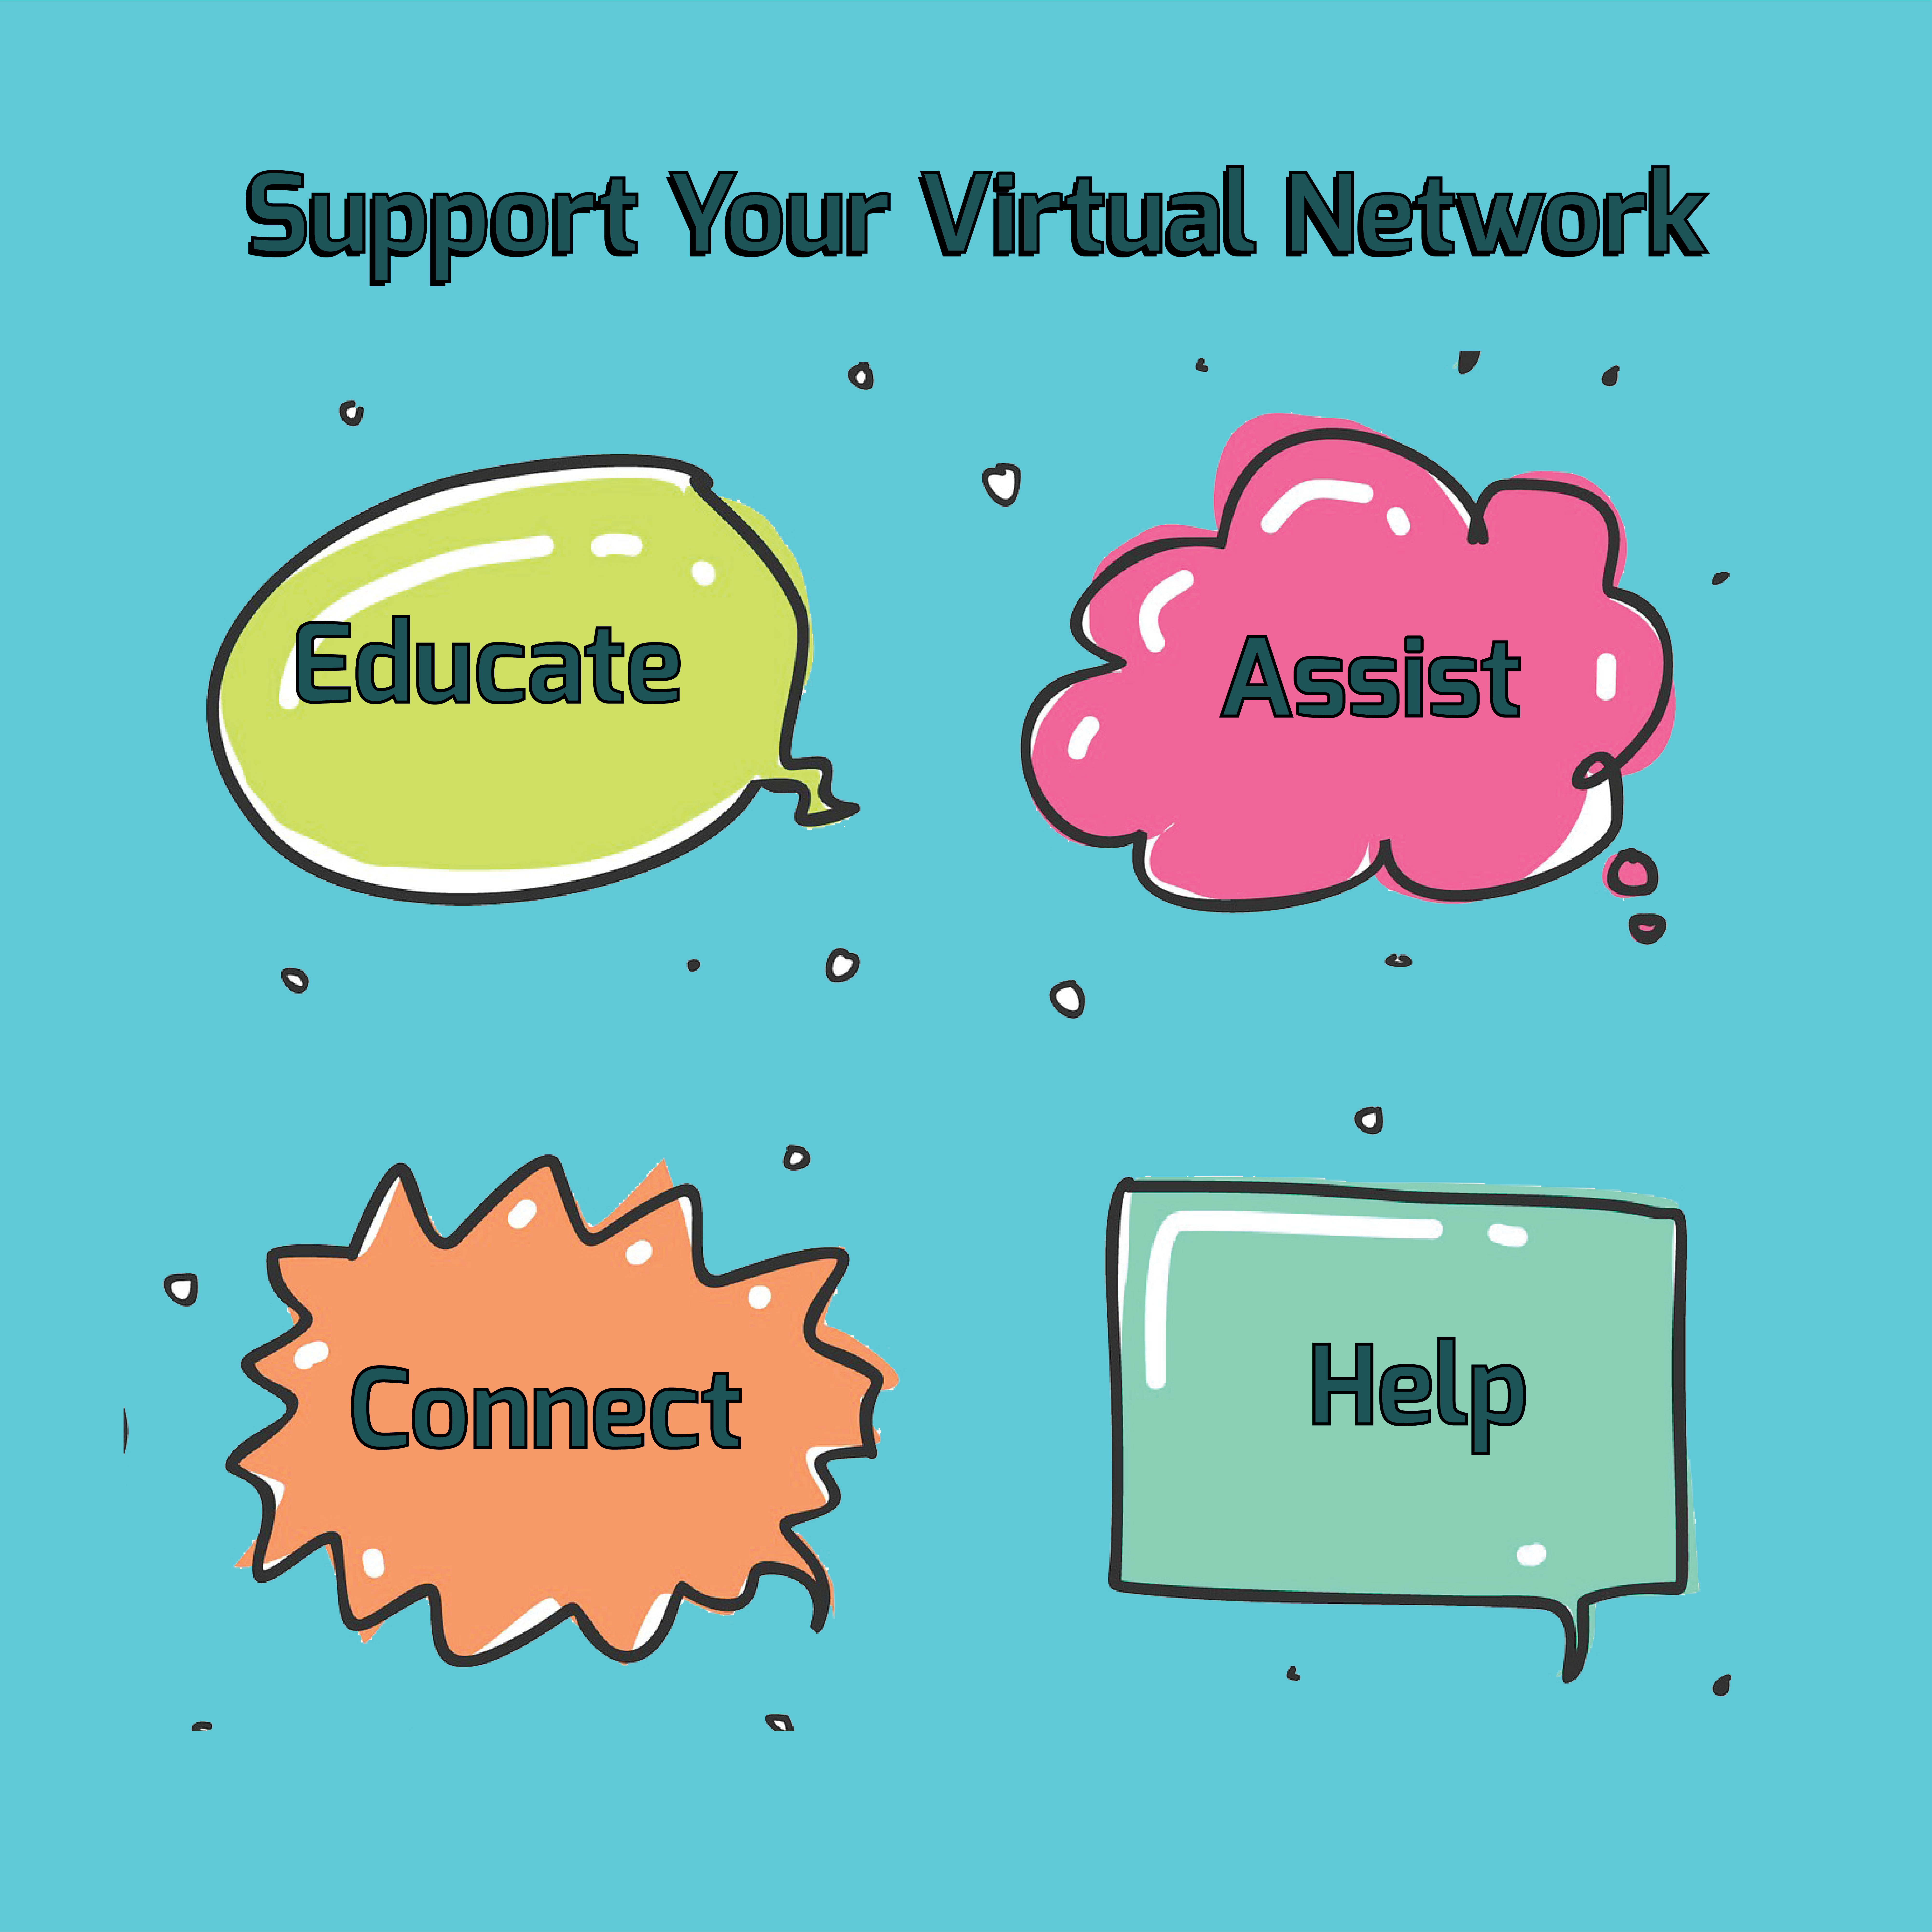 Support your virtual network